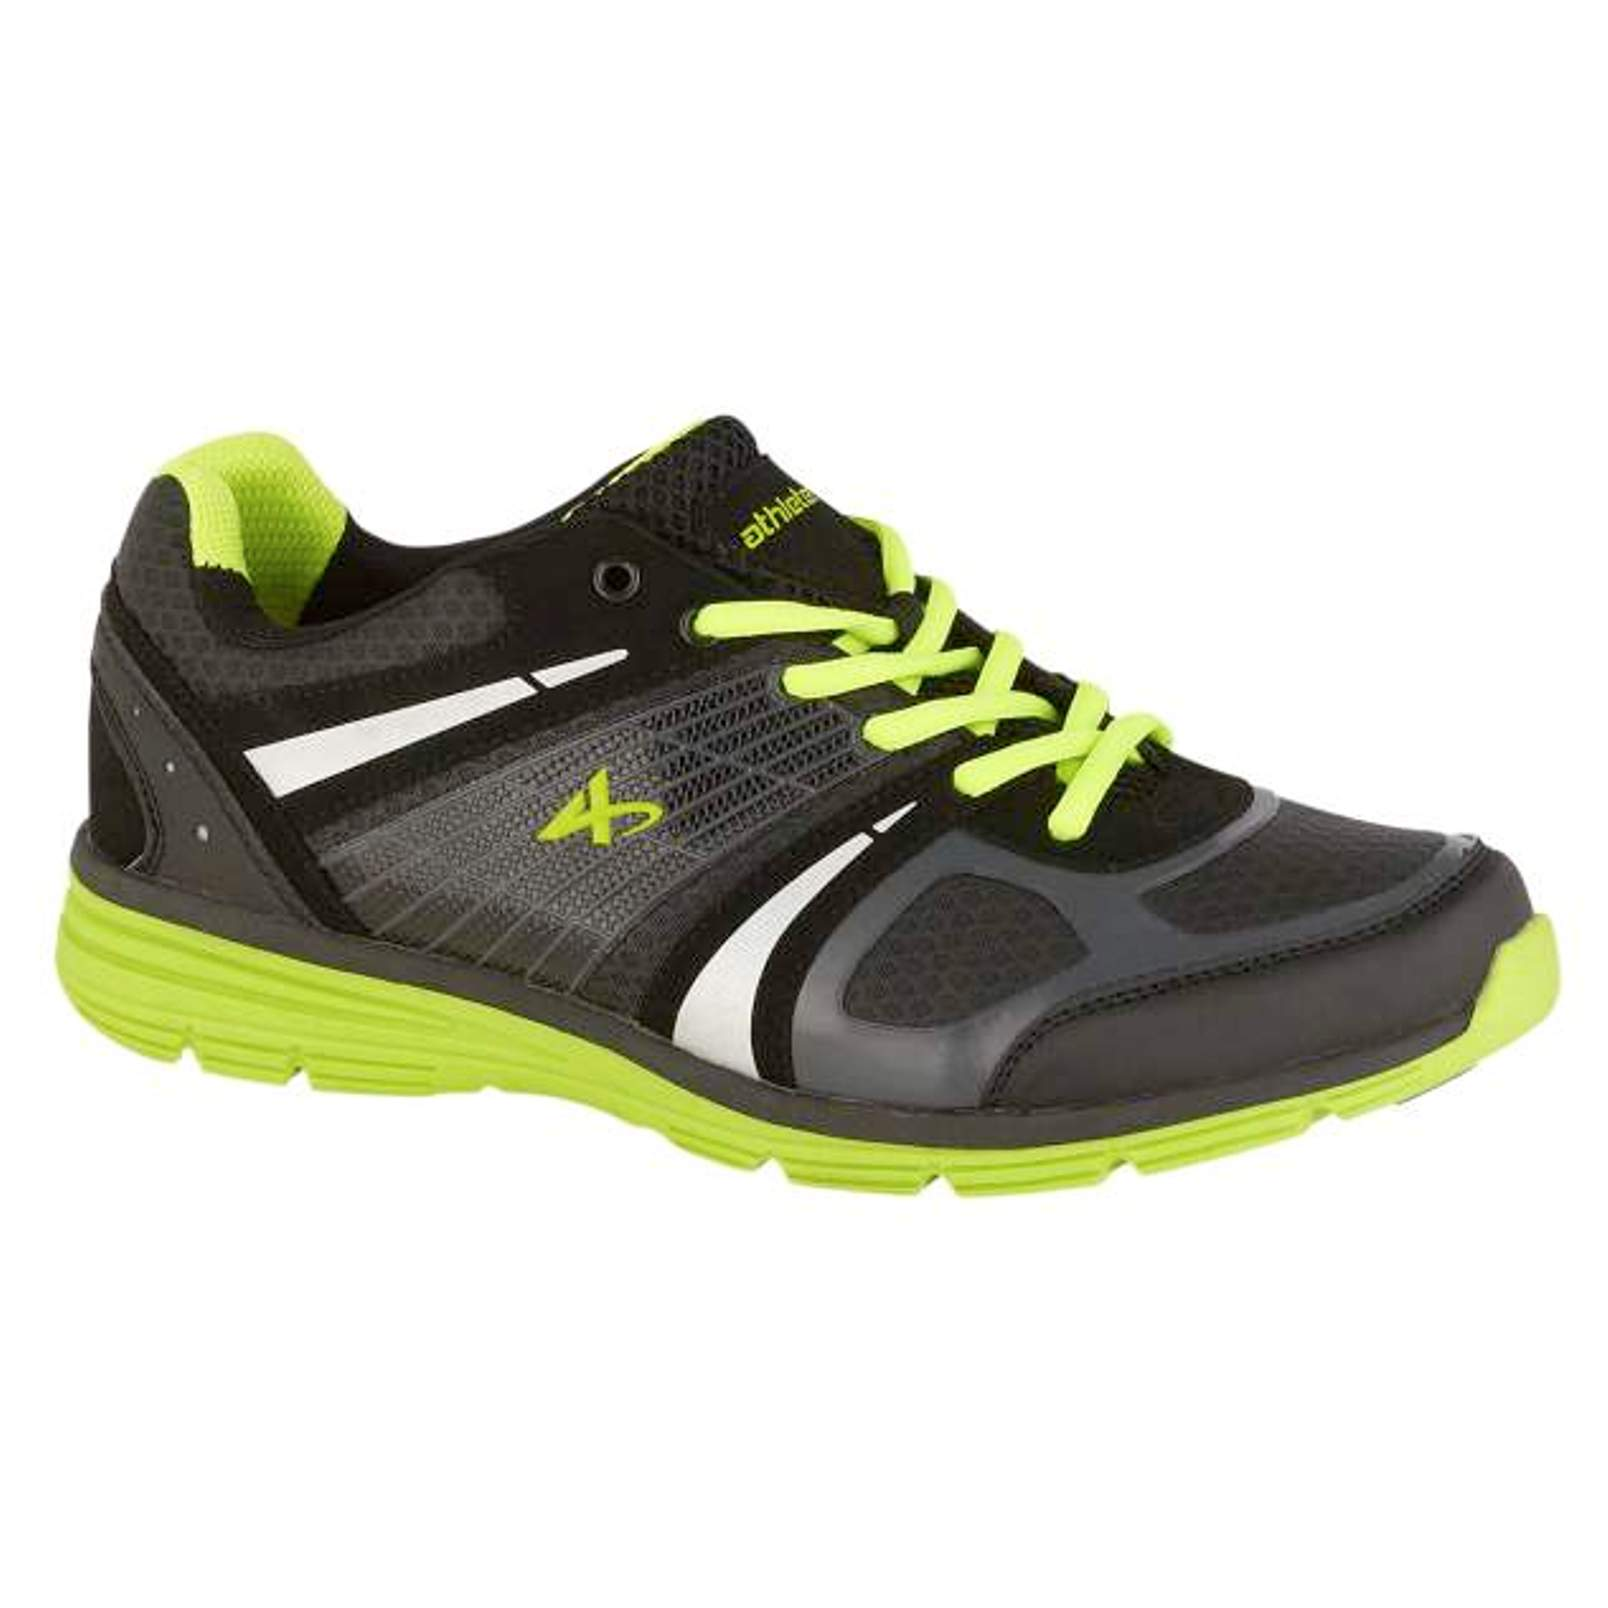 Athletech  Men's Ath L-Hawk2 Athletic